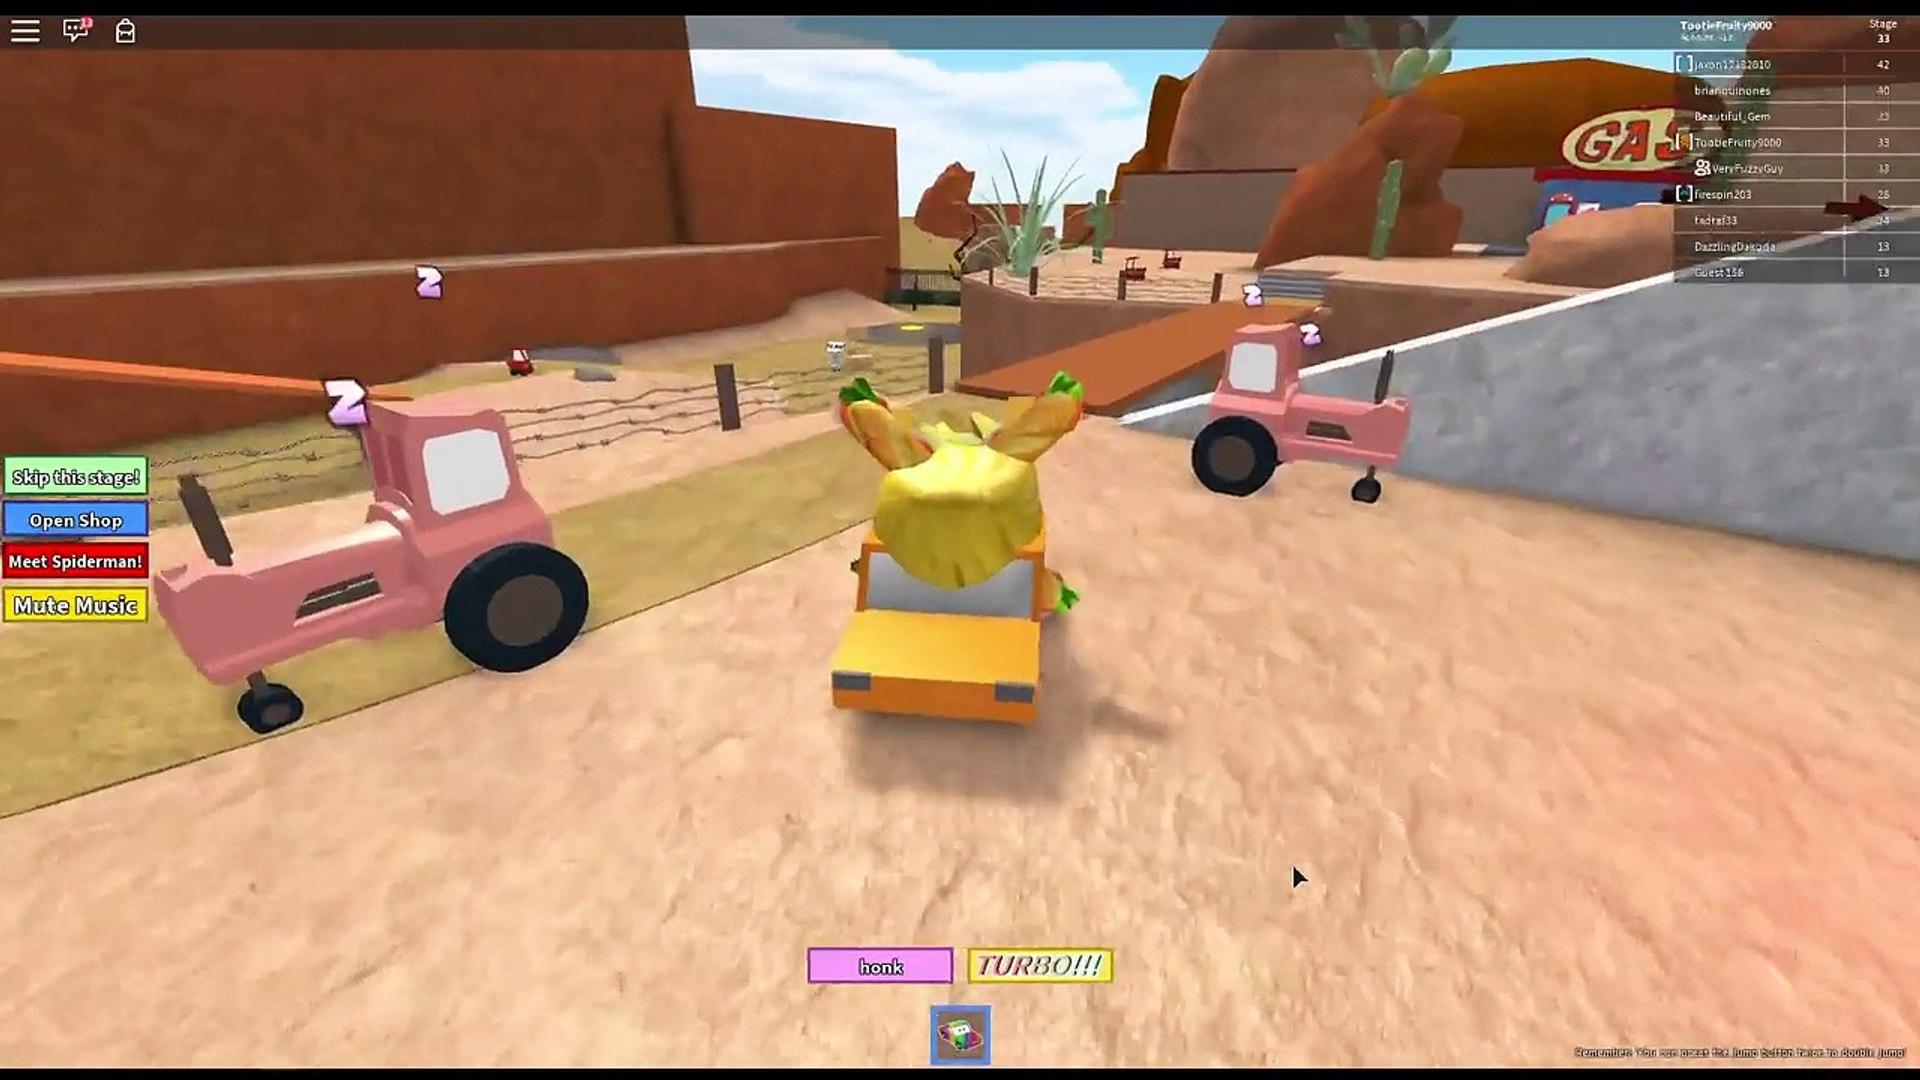 Roblox Save Lightning Mcqueen 2 Cars 3 Obby Annoying Roblox Save Lightning Mcqueen 2 Cars 3 Obby Annoying Orange Plays Pn2nnlktc5g Video Dailymotion